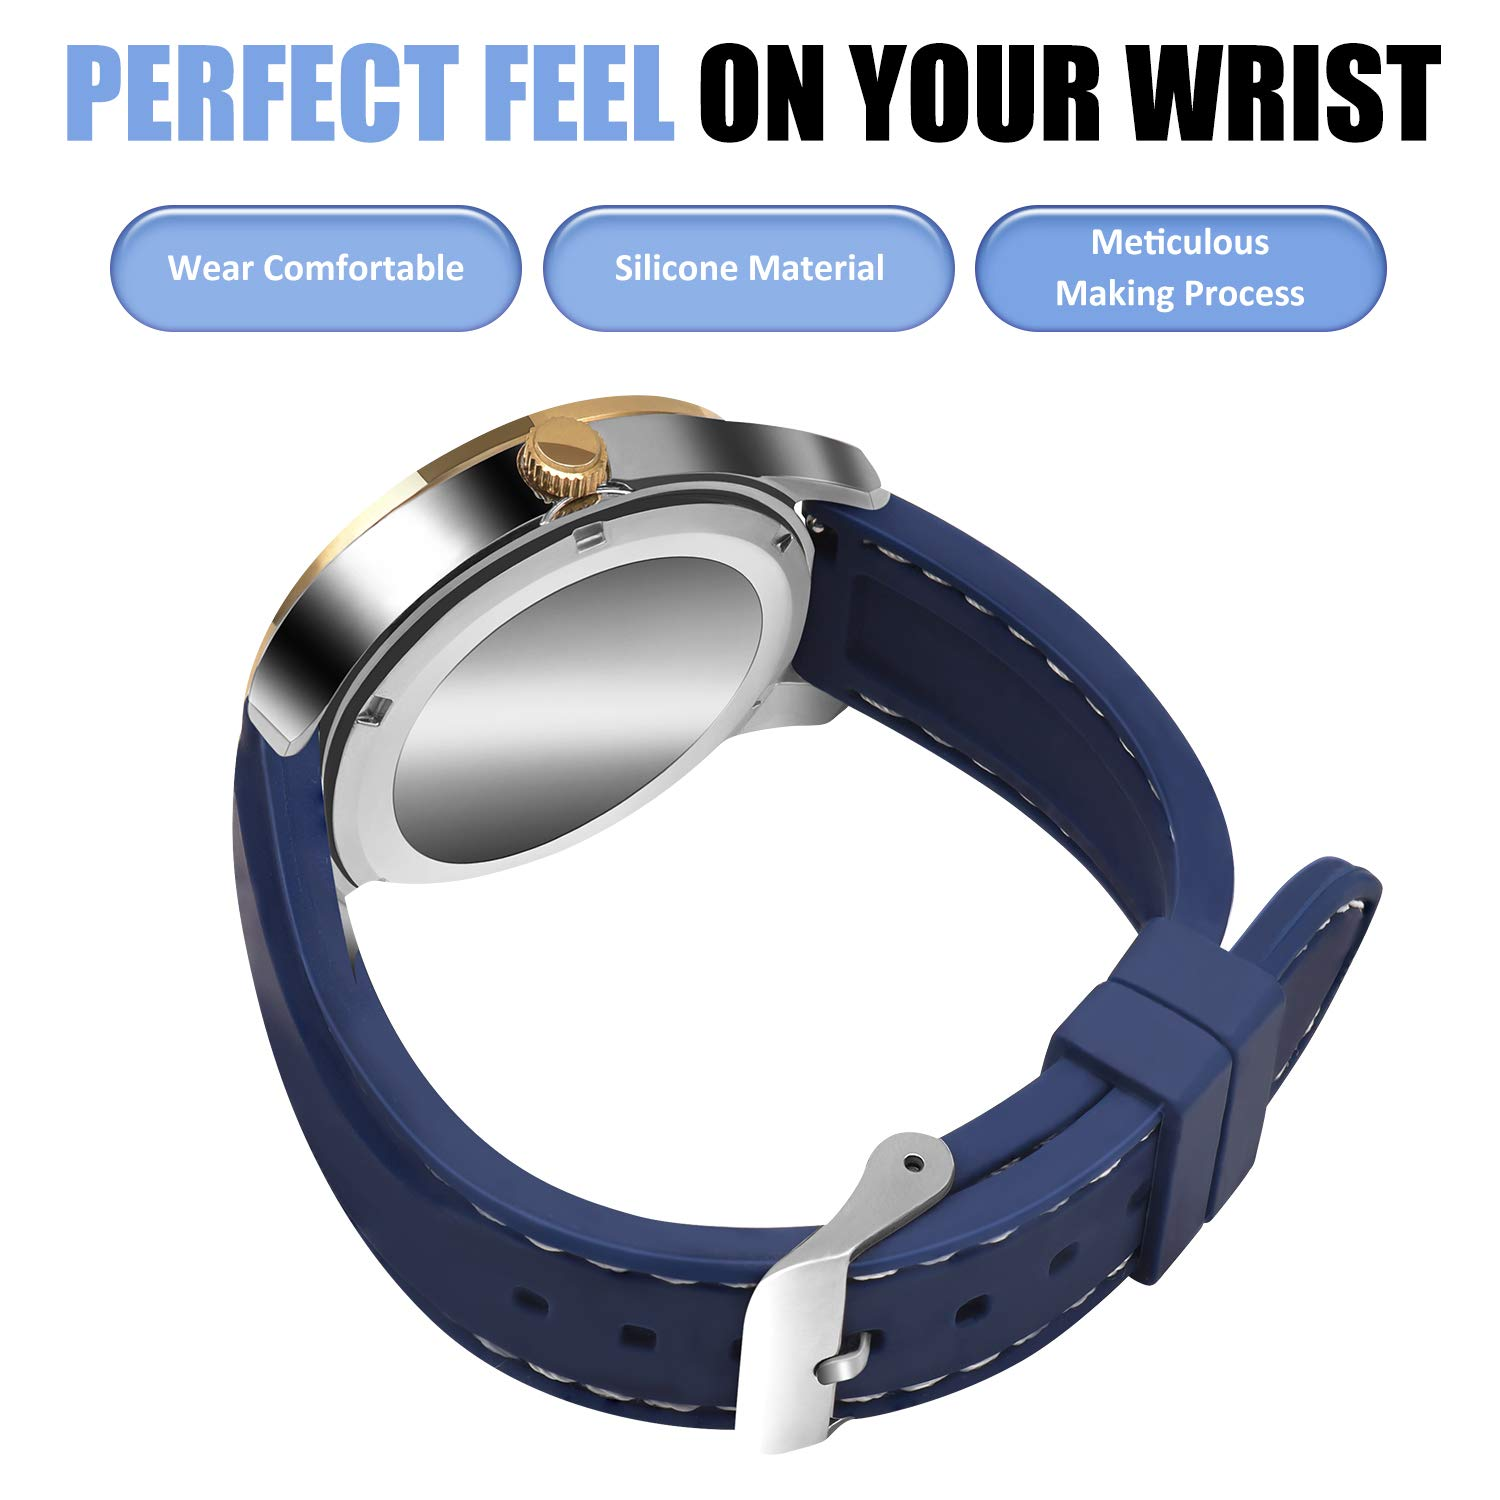 Amazon.com: OLLREAR Silicone Watch Strap Replacement Rubber Watch Band -8 Colors & 5 Sizes - 16/18/20/22/24mm (22mm, Navy Blue/White): Watches